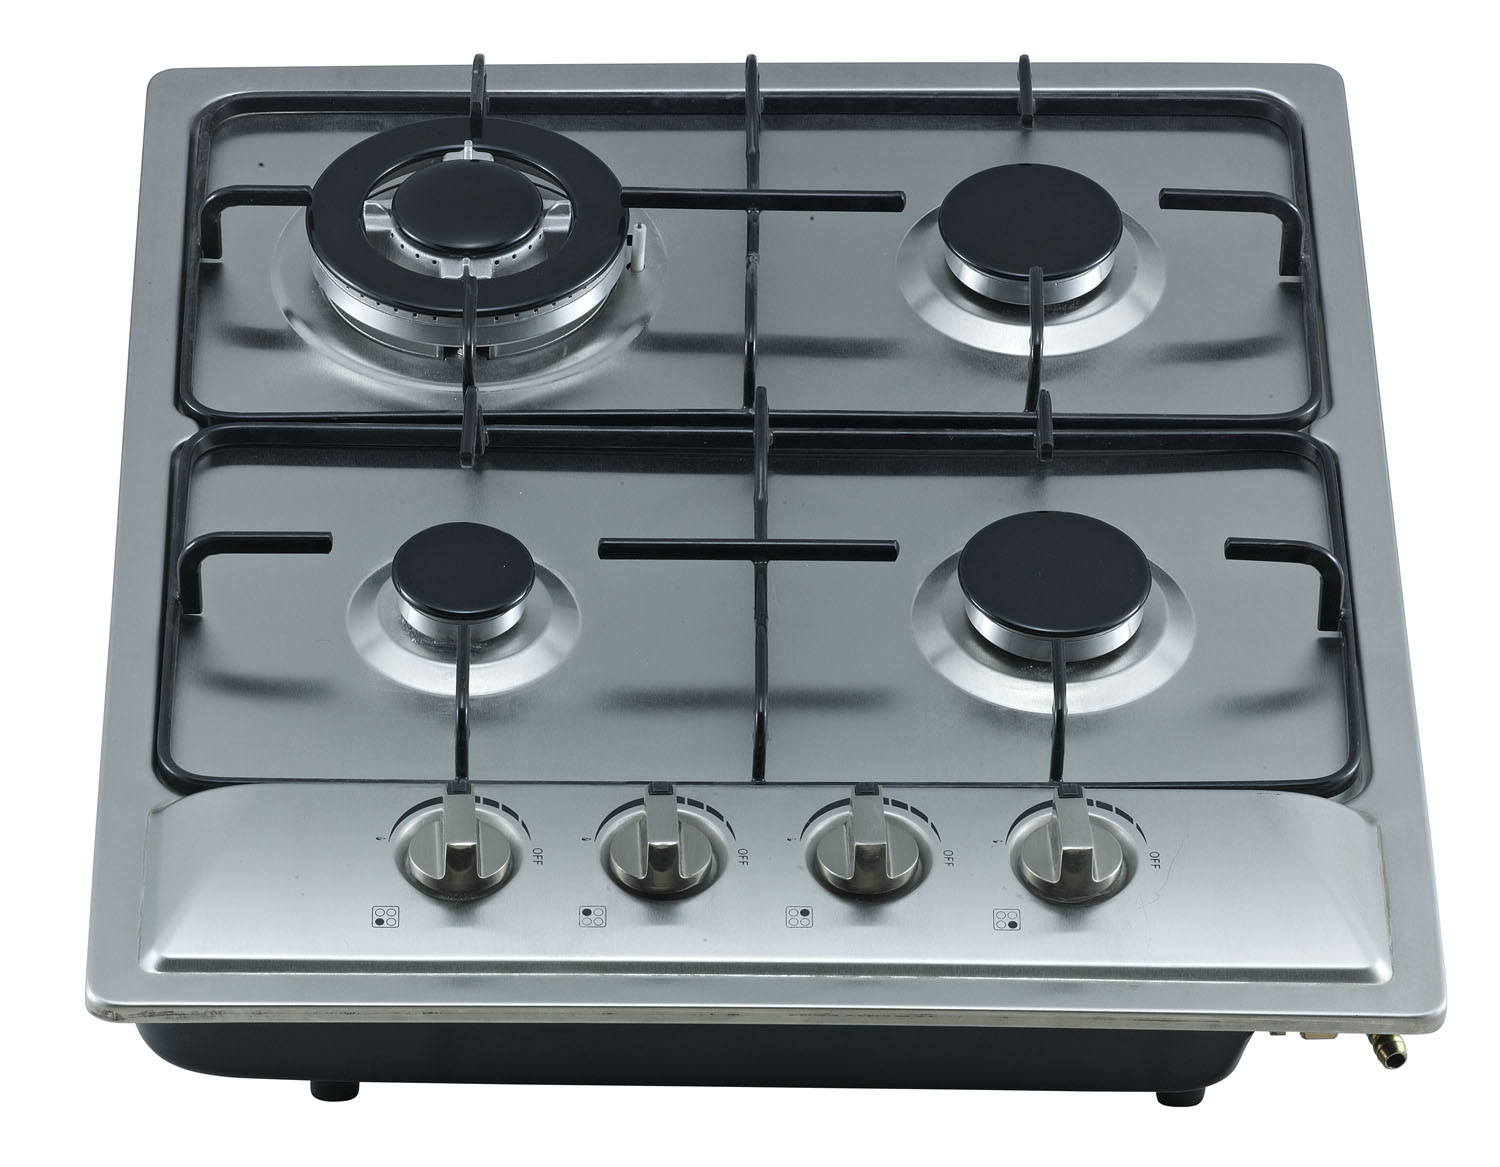 Built-in Gas Stove with S/S Top Cover Four Burner Sn-614